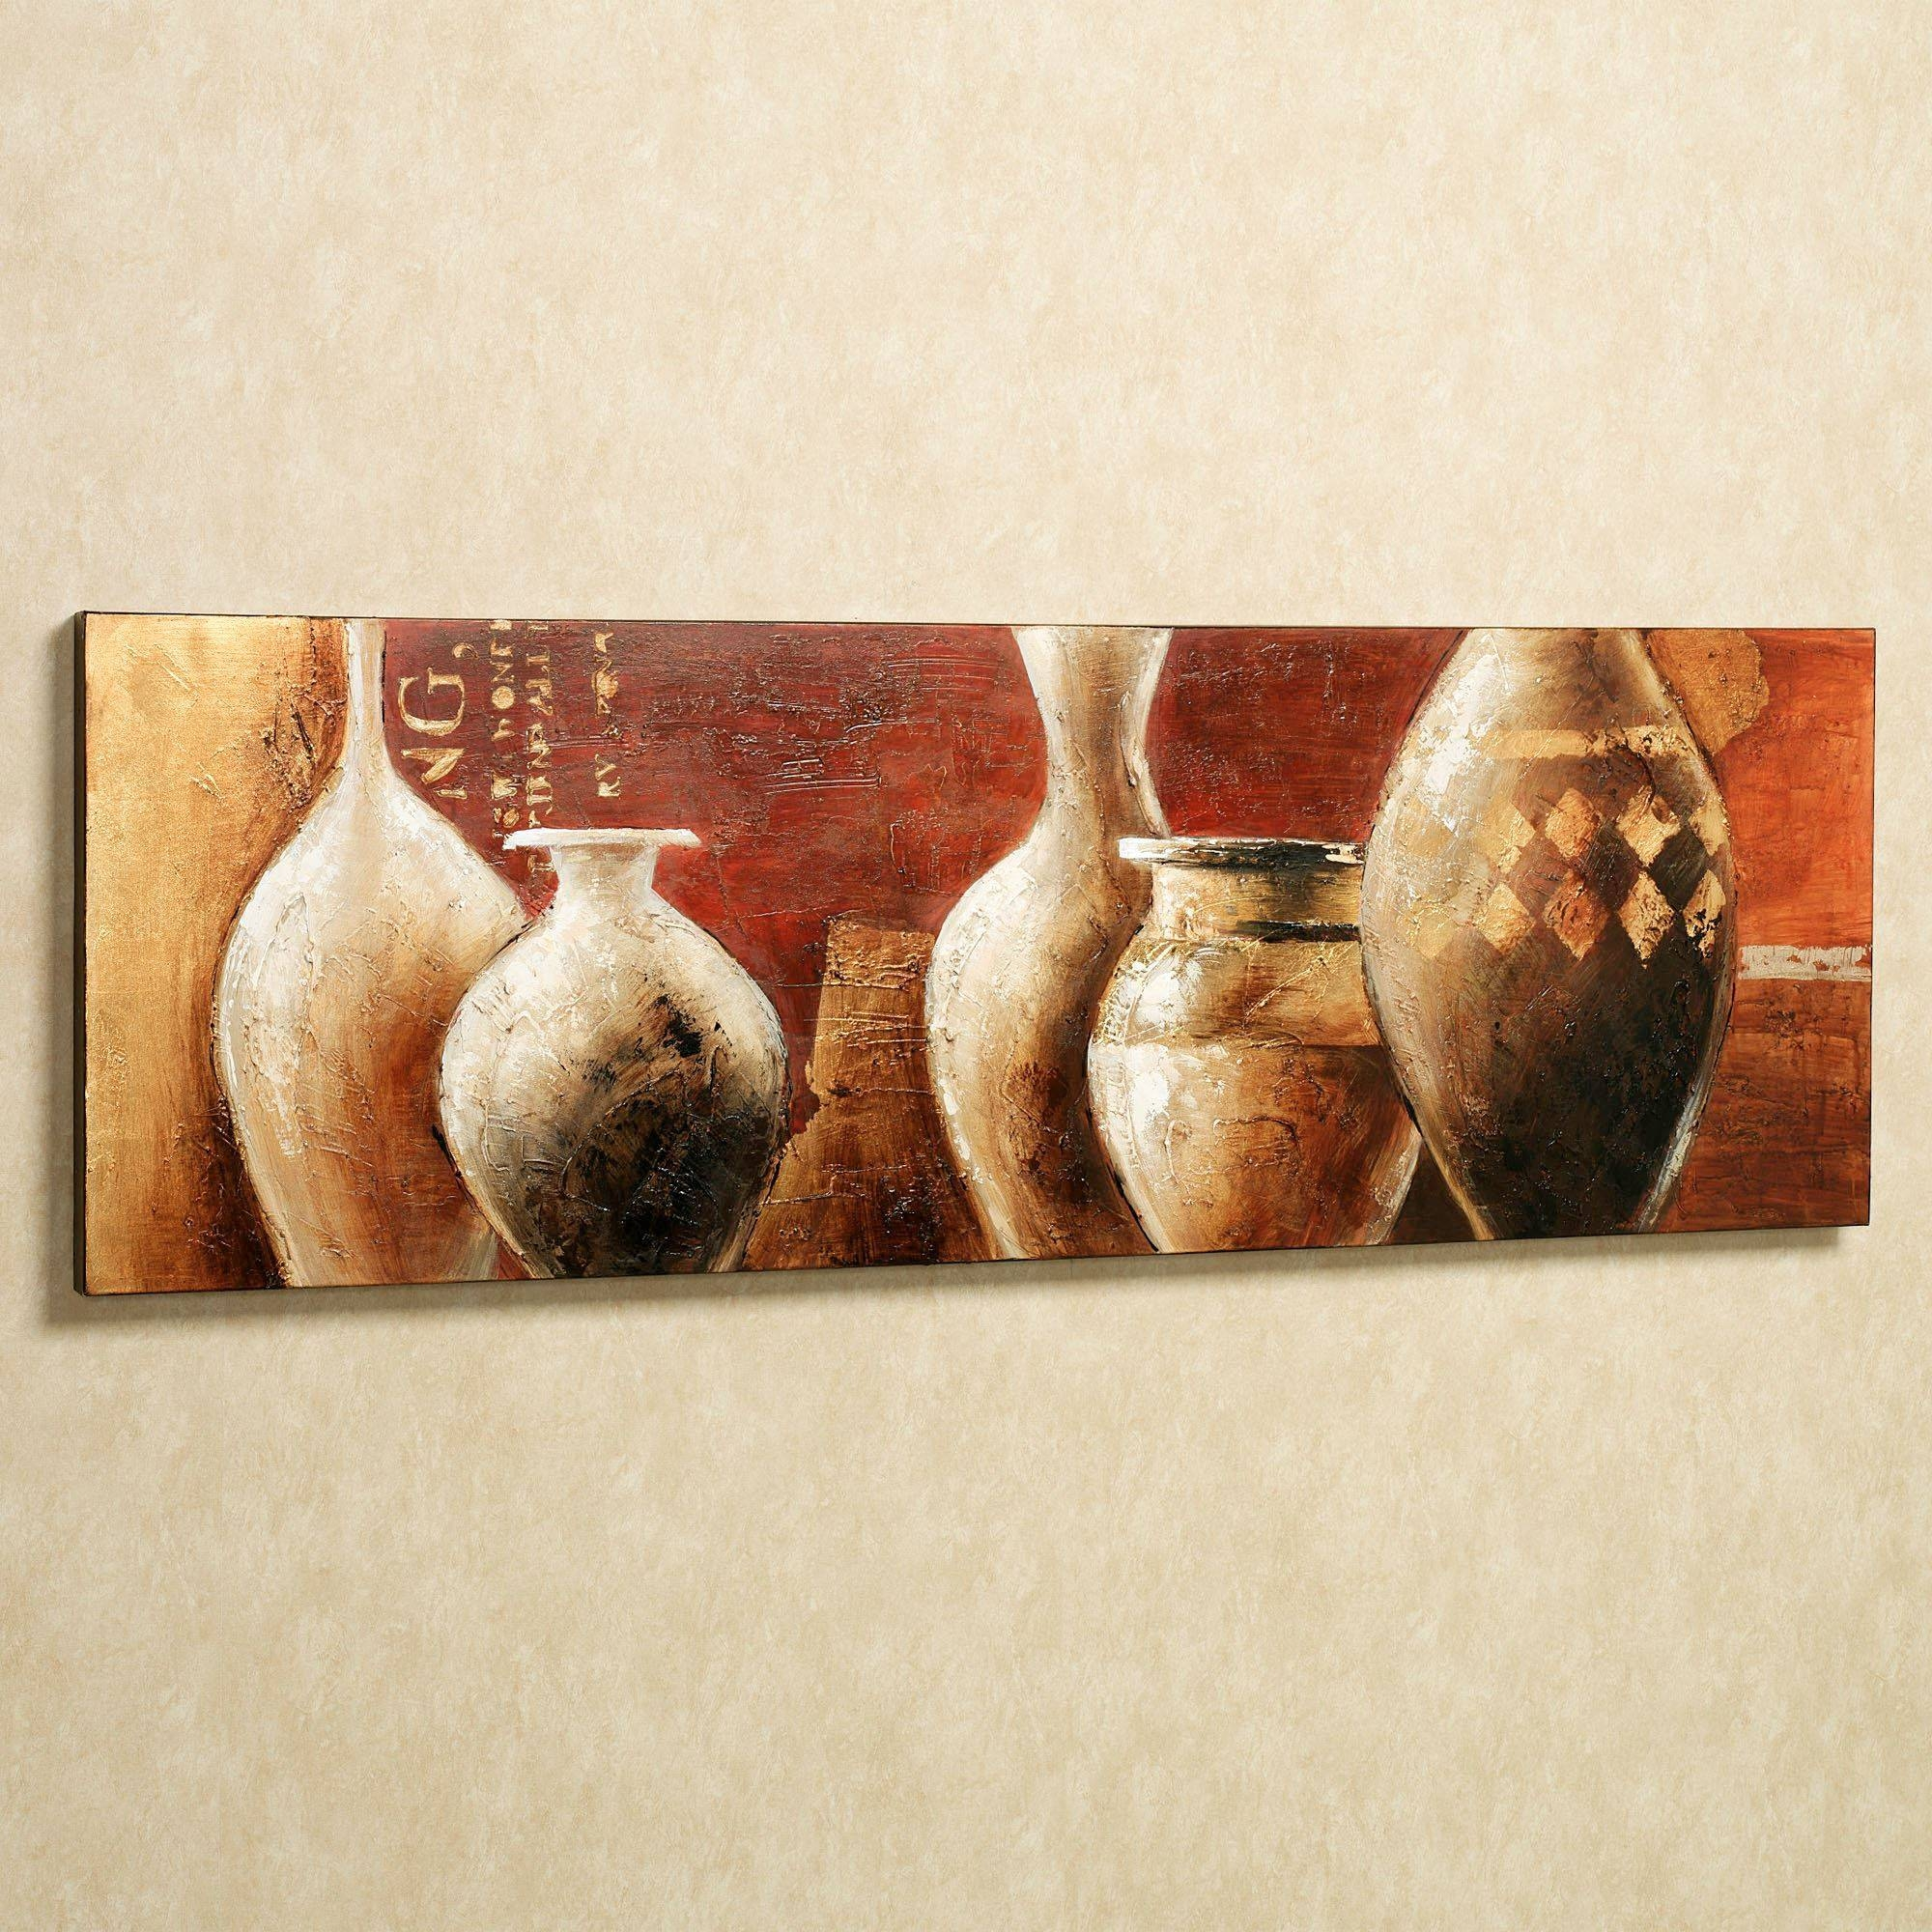 Tuscan Earthenware Handpainted Canvas Wall Art Inside Most Recent Tuscan Wall Art Decor (View 11 of 20)